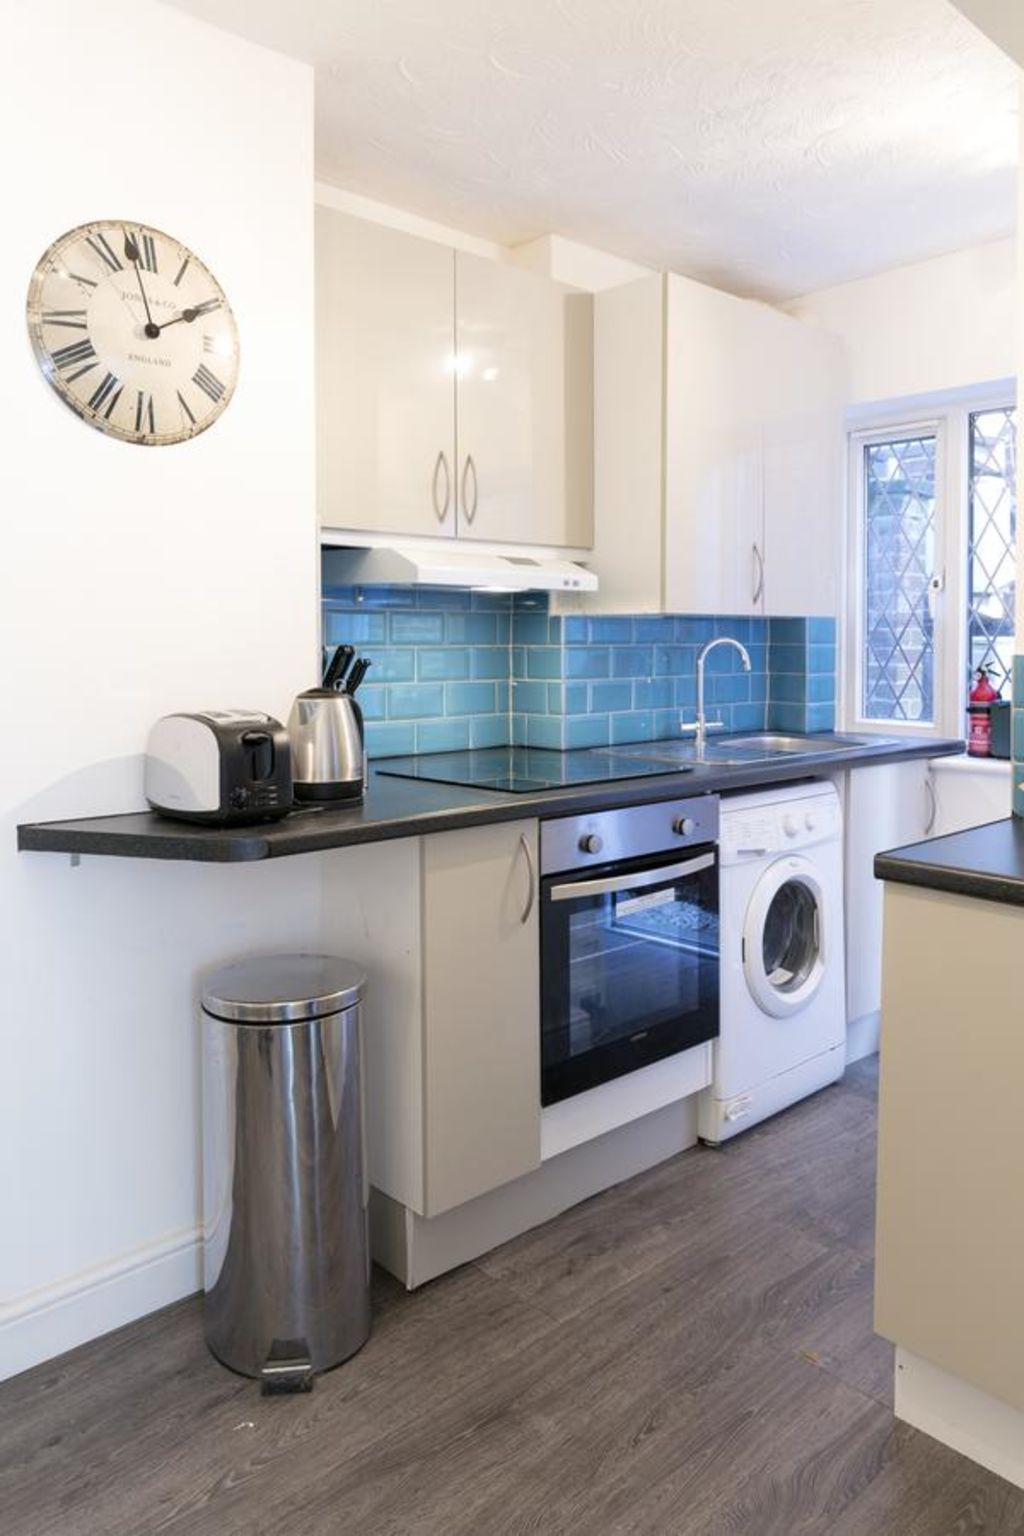 image 4 furnished 1 bedroom Apartment for rent in South Cambridgeshire, Cambridgeshire